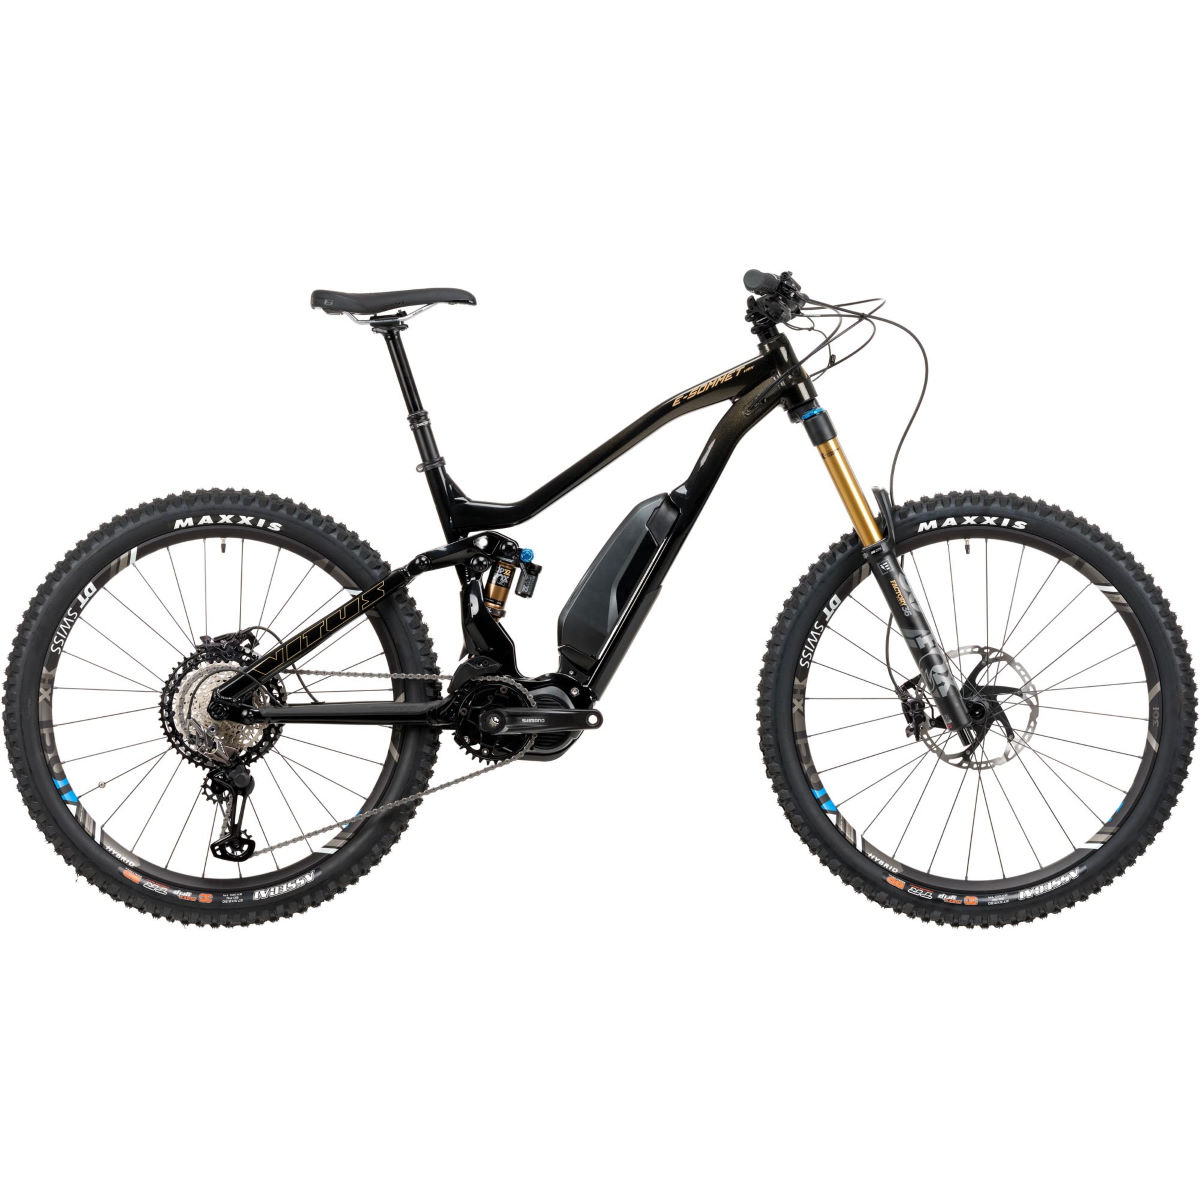 Vitus Vitus E-Sommet VRX E-Bike (XTR/XT 1x12 - 2020)   Electric Mountain Bikes